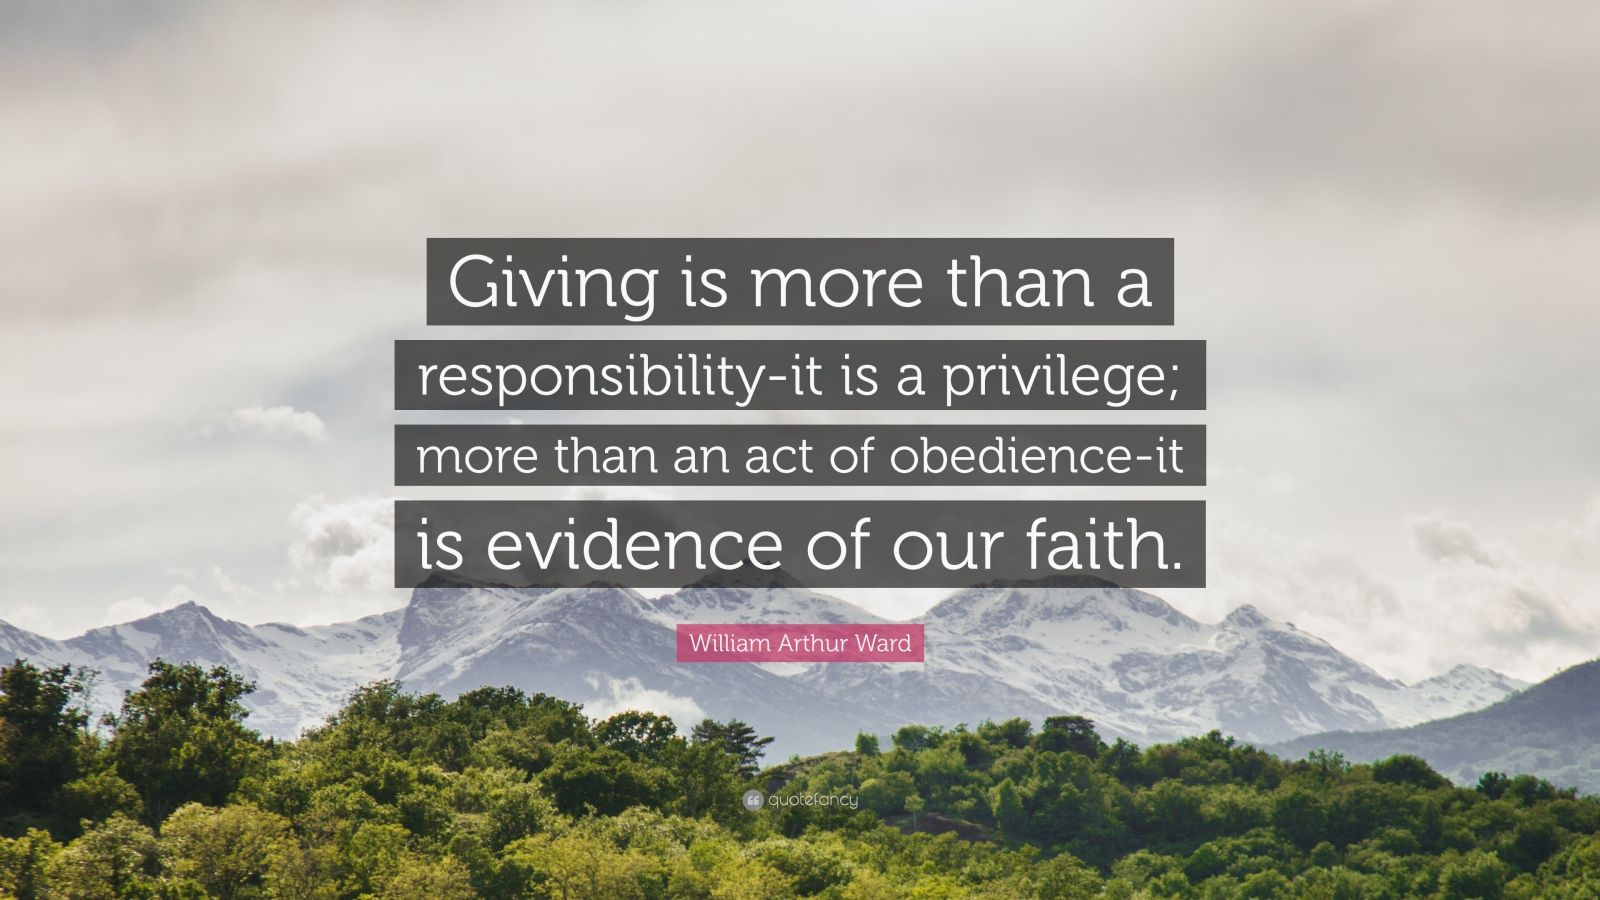 """William Arthur Ward Quote: """"Giving is more than a responsibility-it is a privilege; more than an act of obedience-it is evidence of our faith."""""""